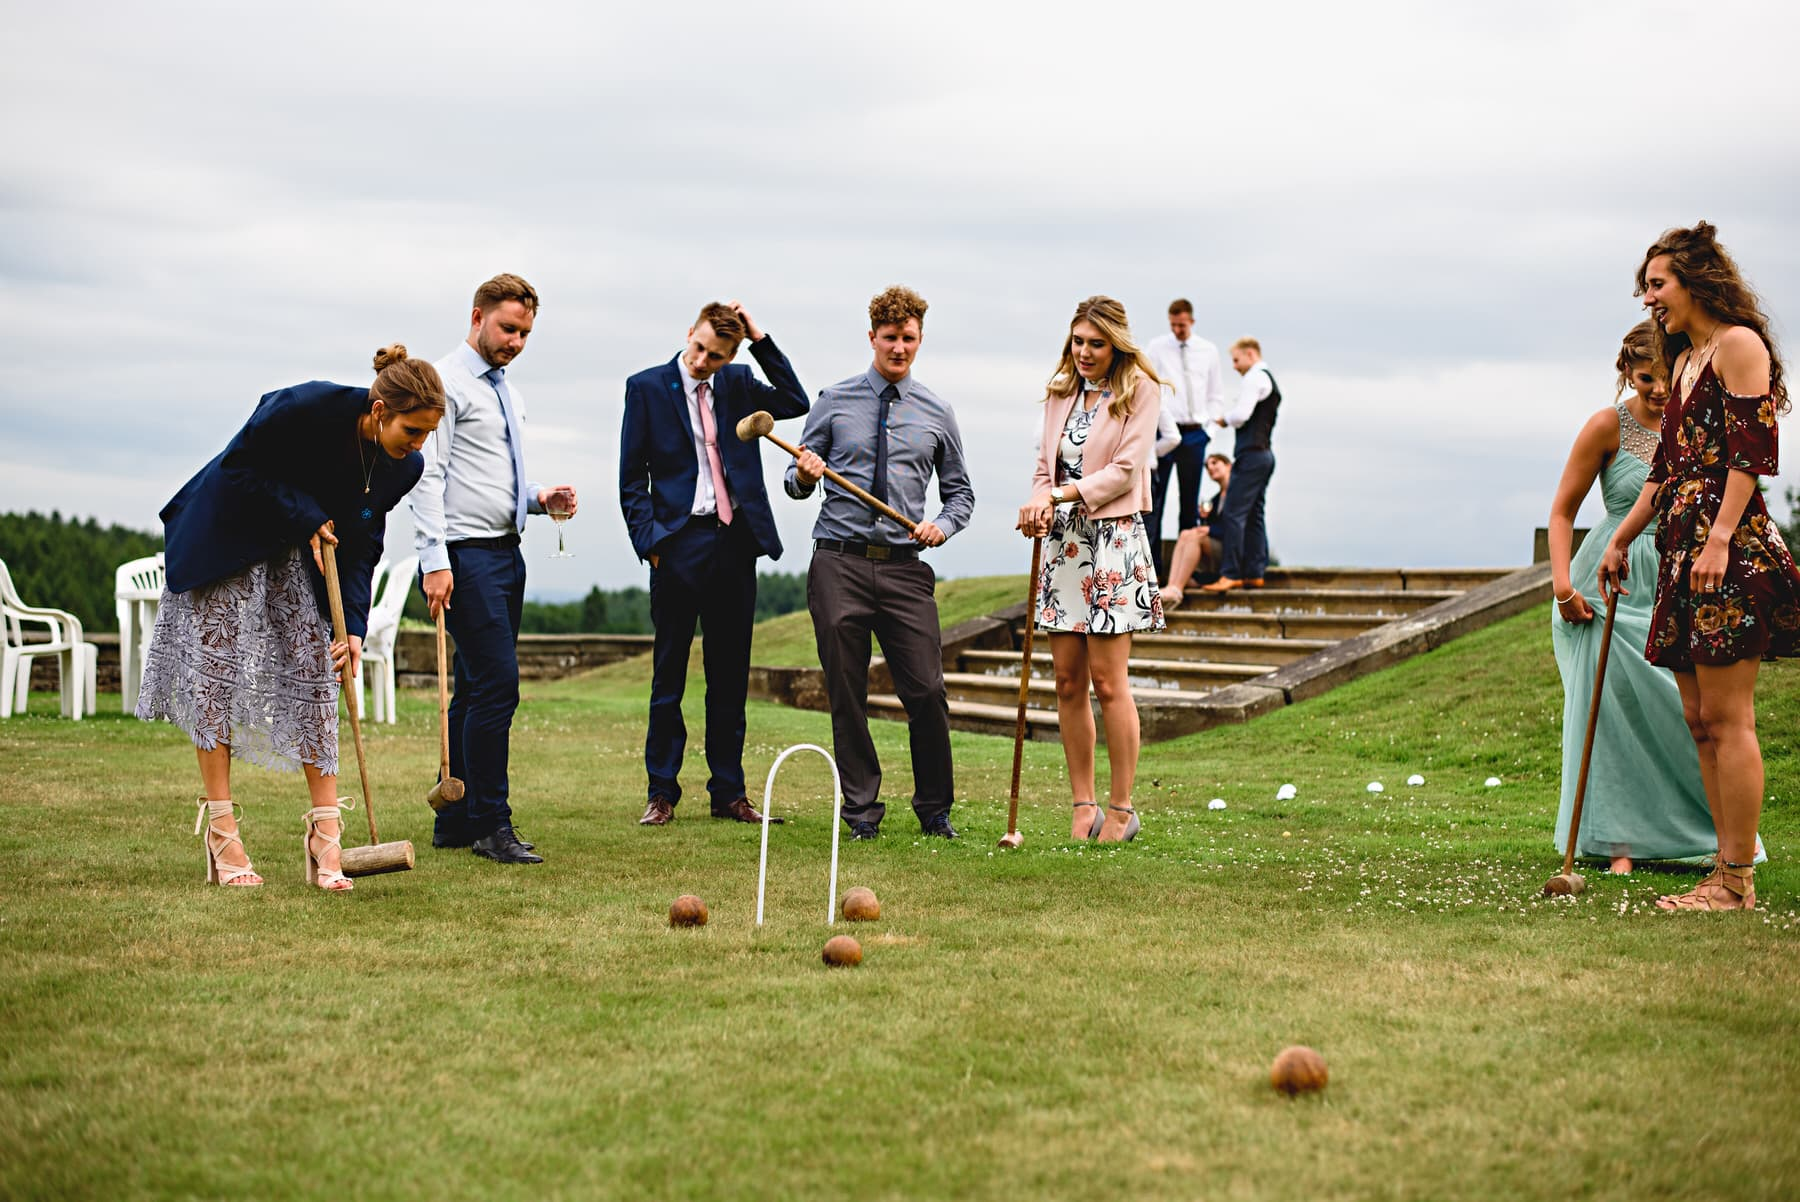 wedding guests on the lawns playing games